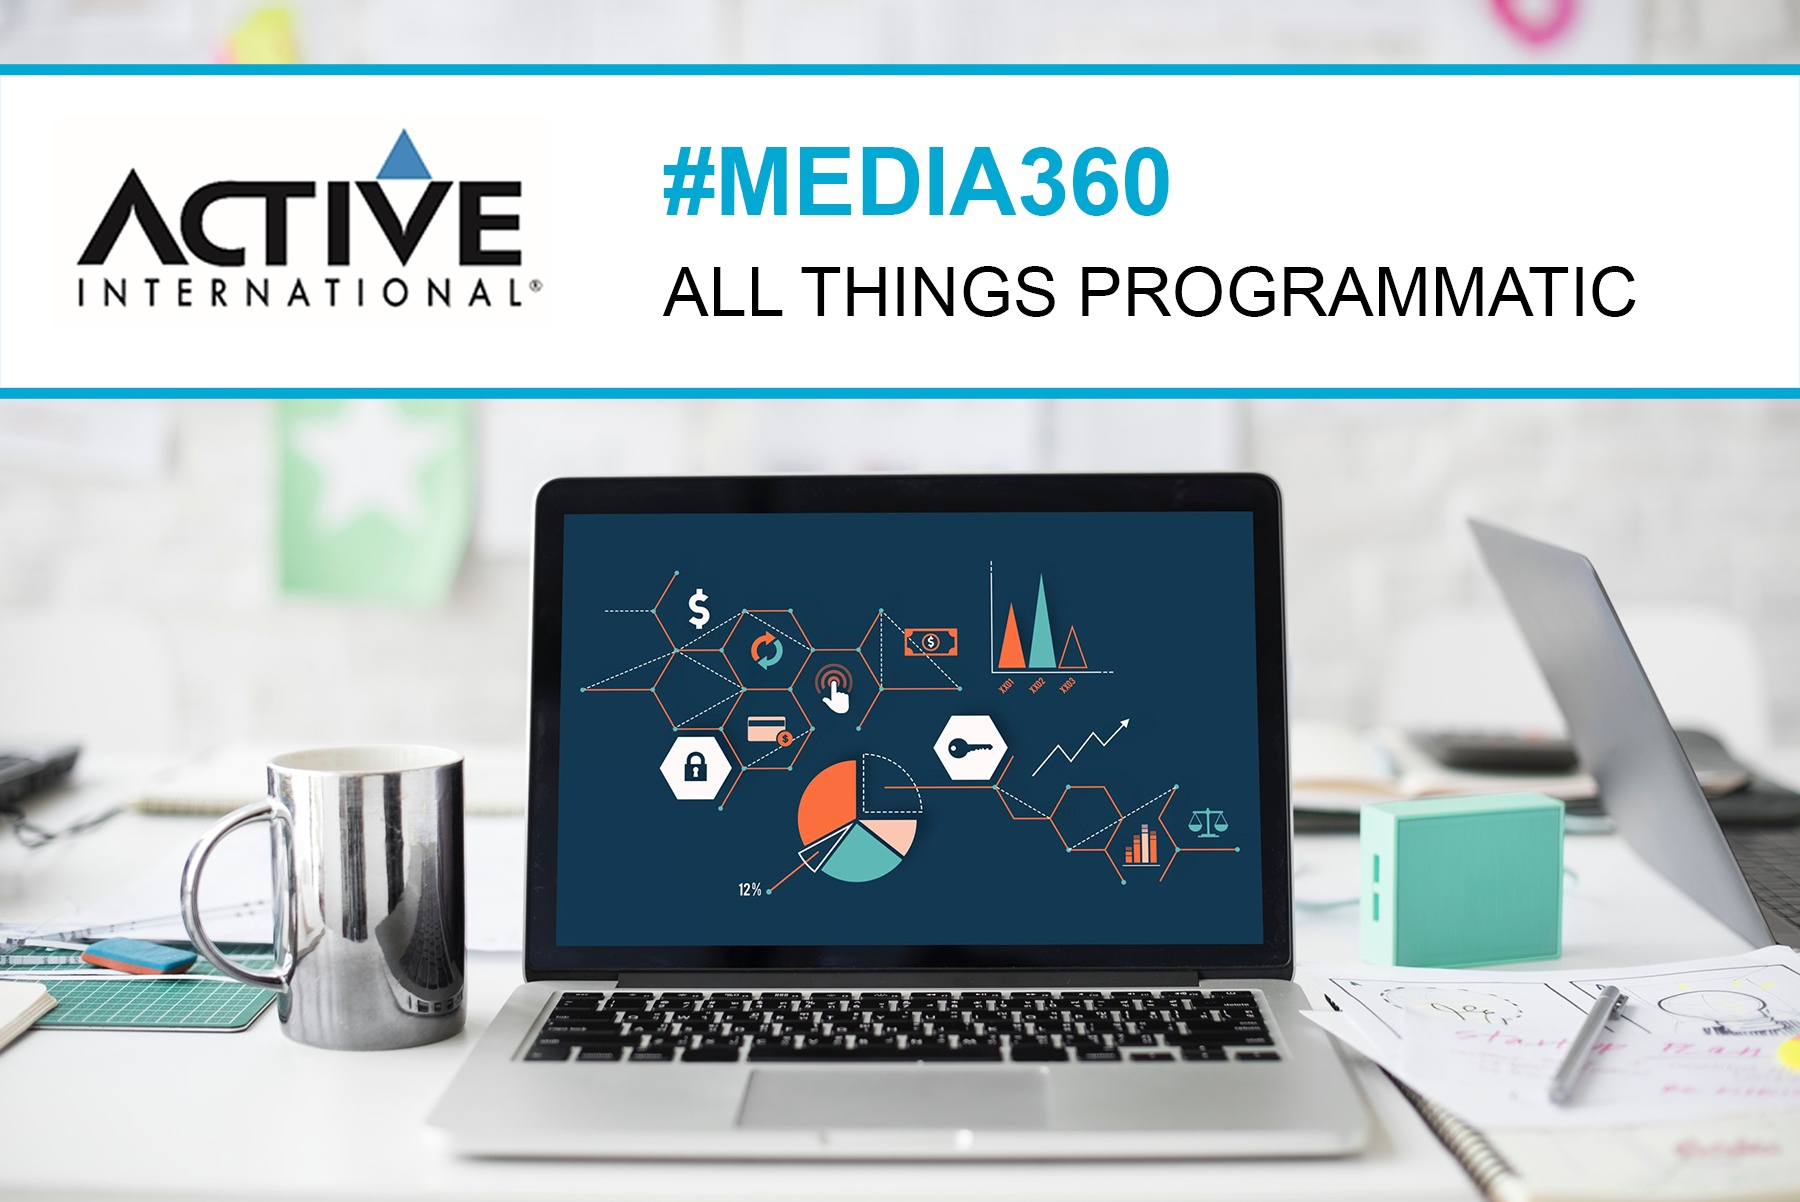 Media 360 - Programmatic - July 2018-1.jpg